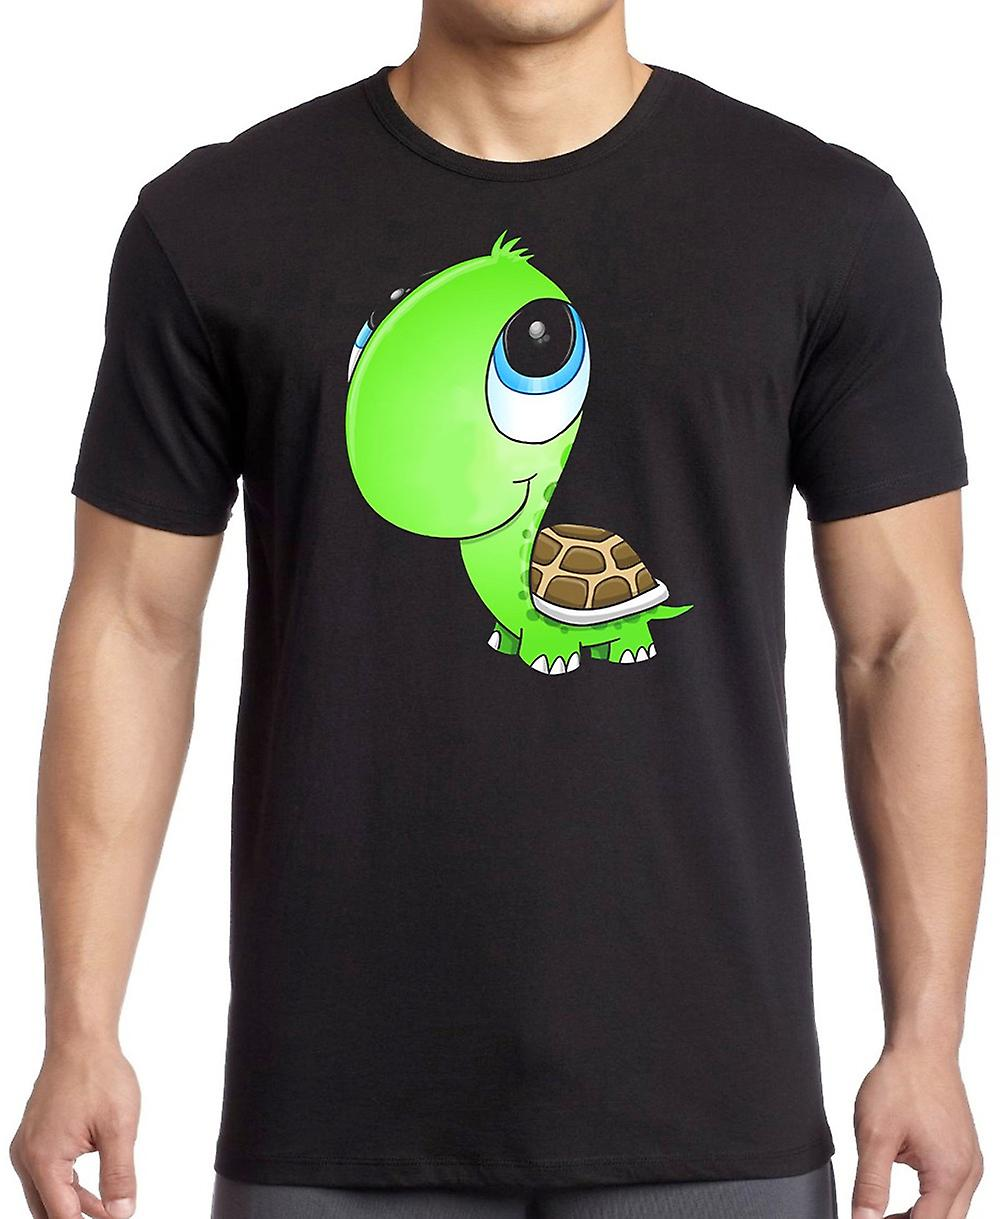 Cute Tortoise Turtle Design - Funny Kids T Shirt